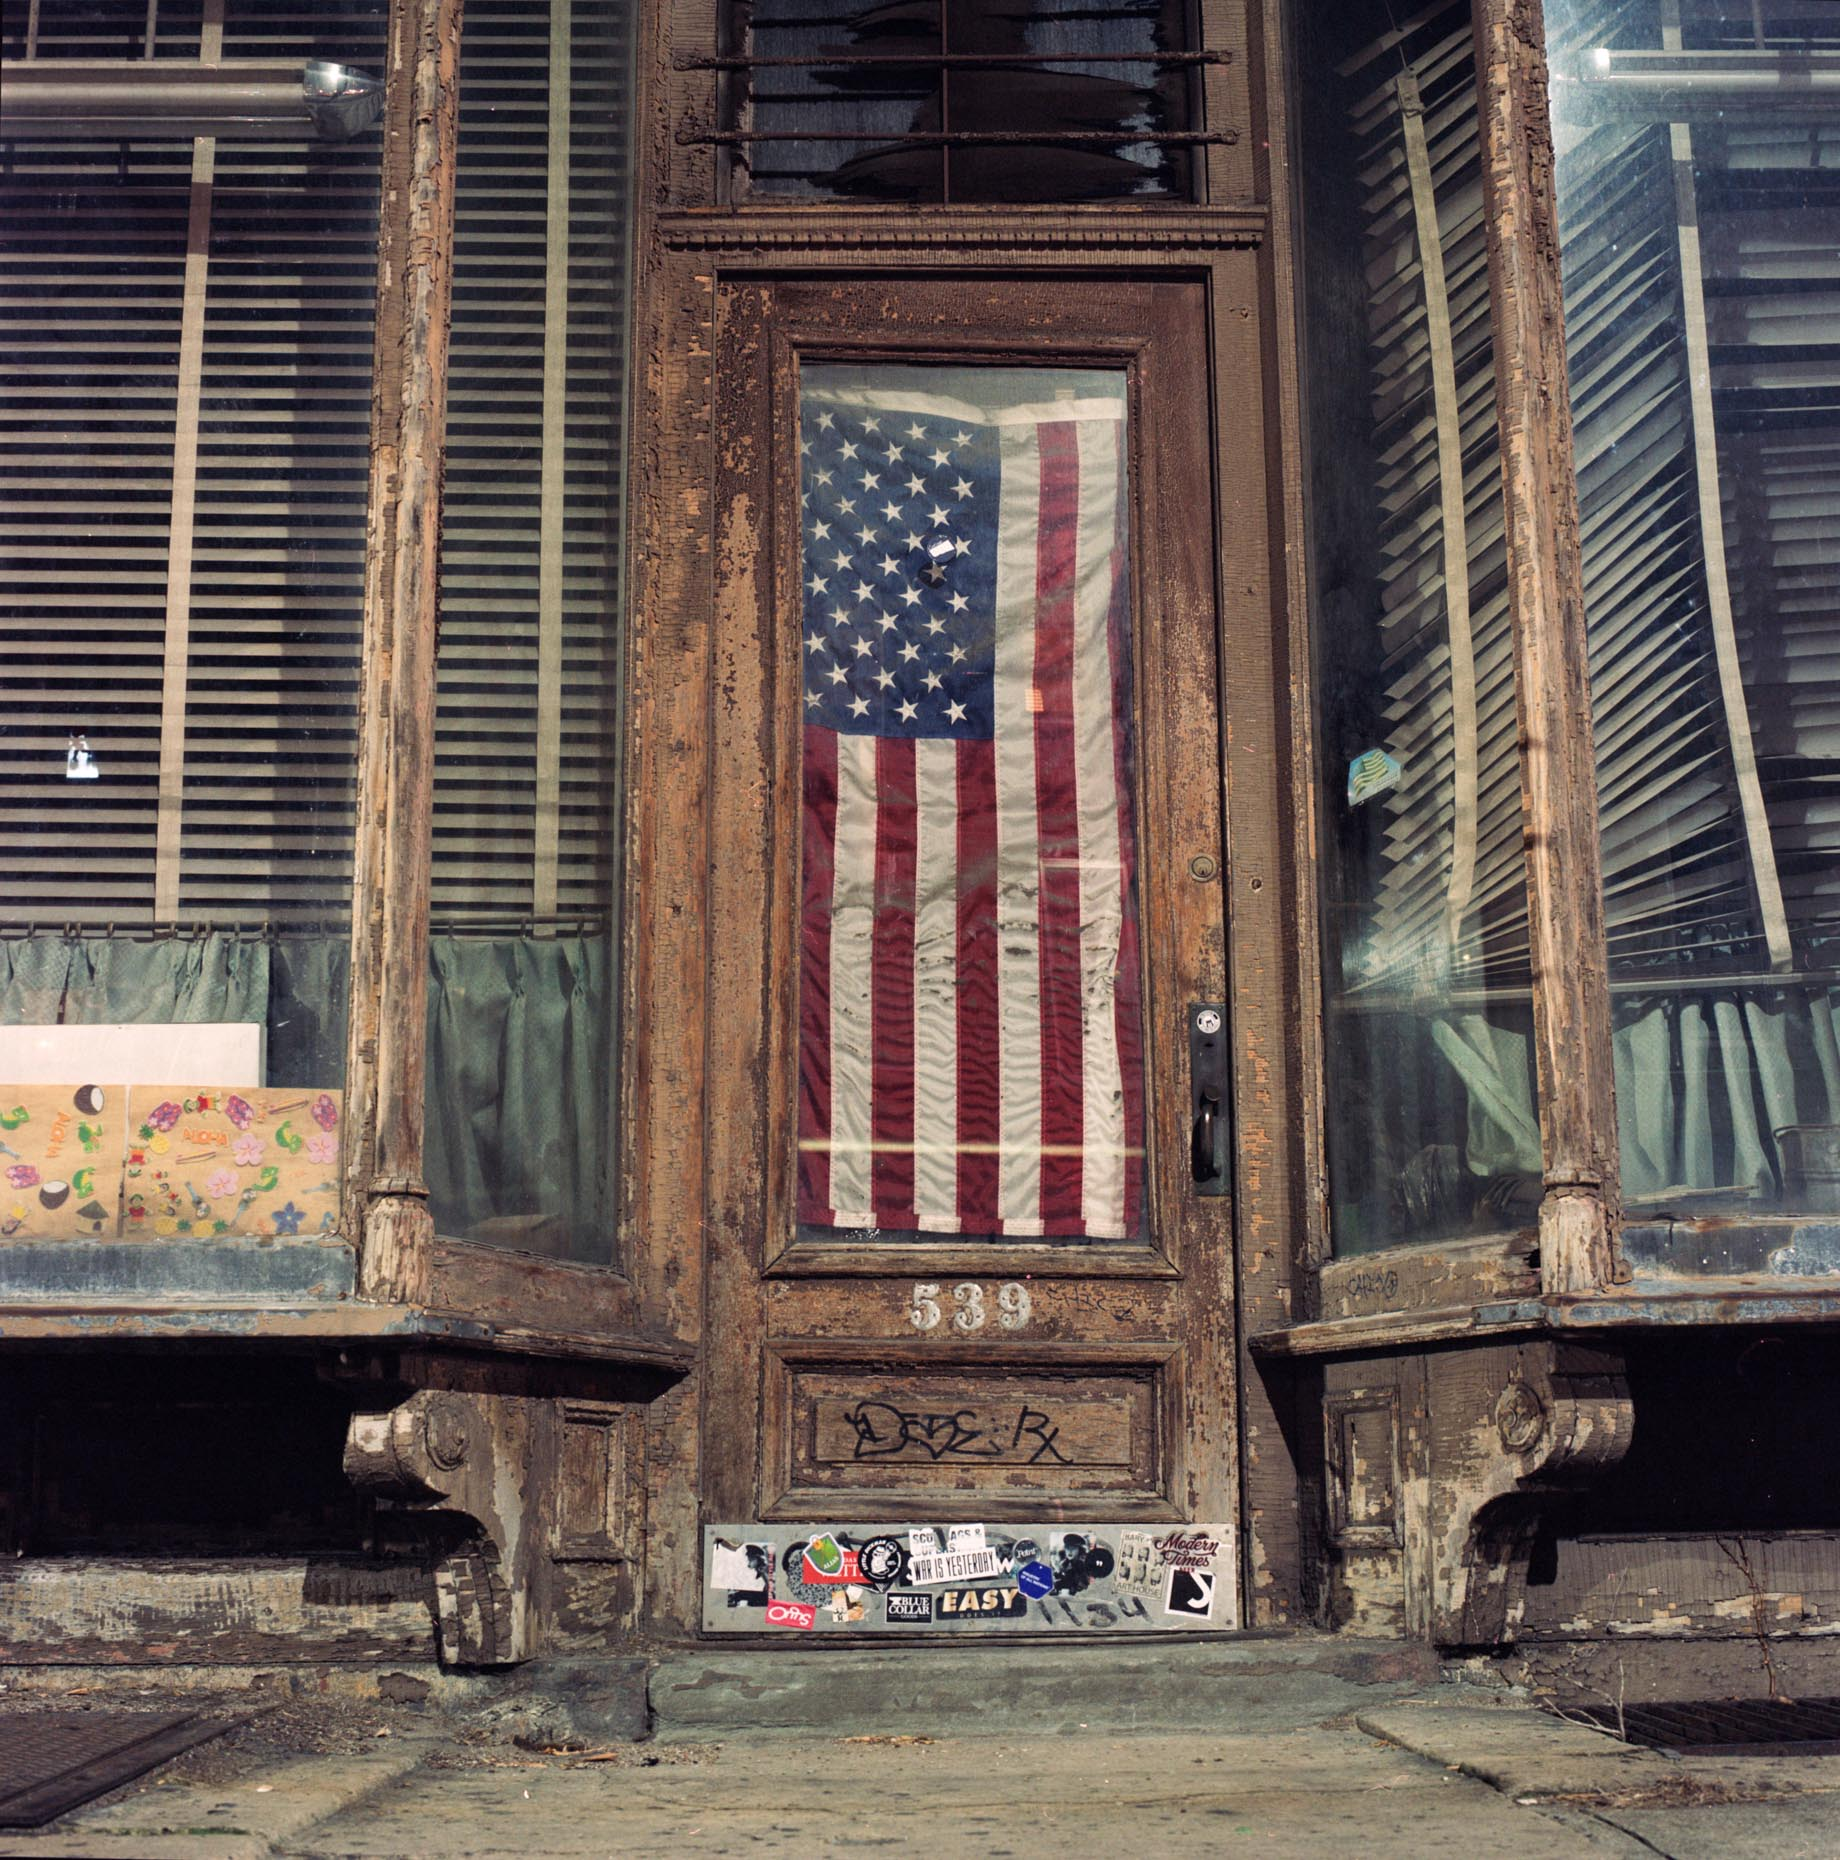 An American flag hangs in the doorway of an abandoned store on Driggs Ave in Brooklyn